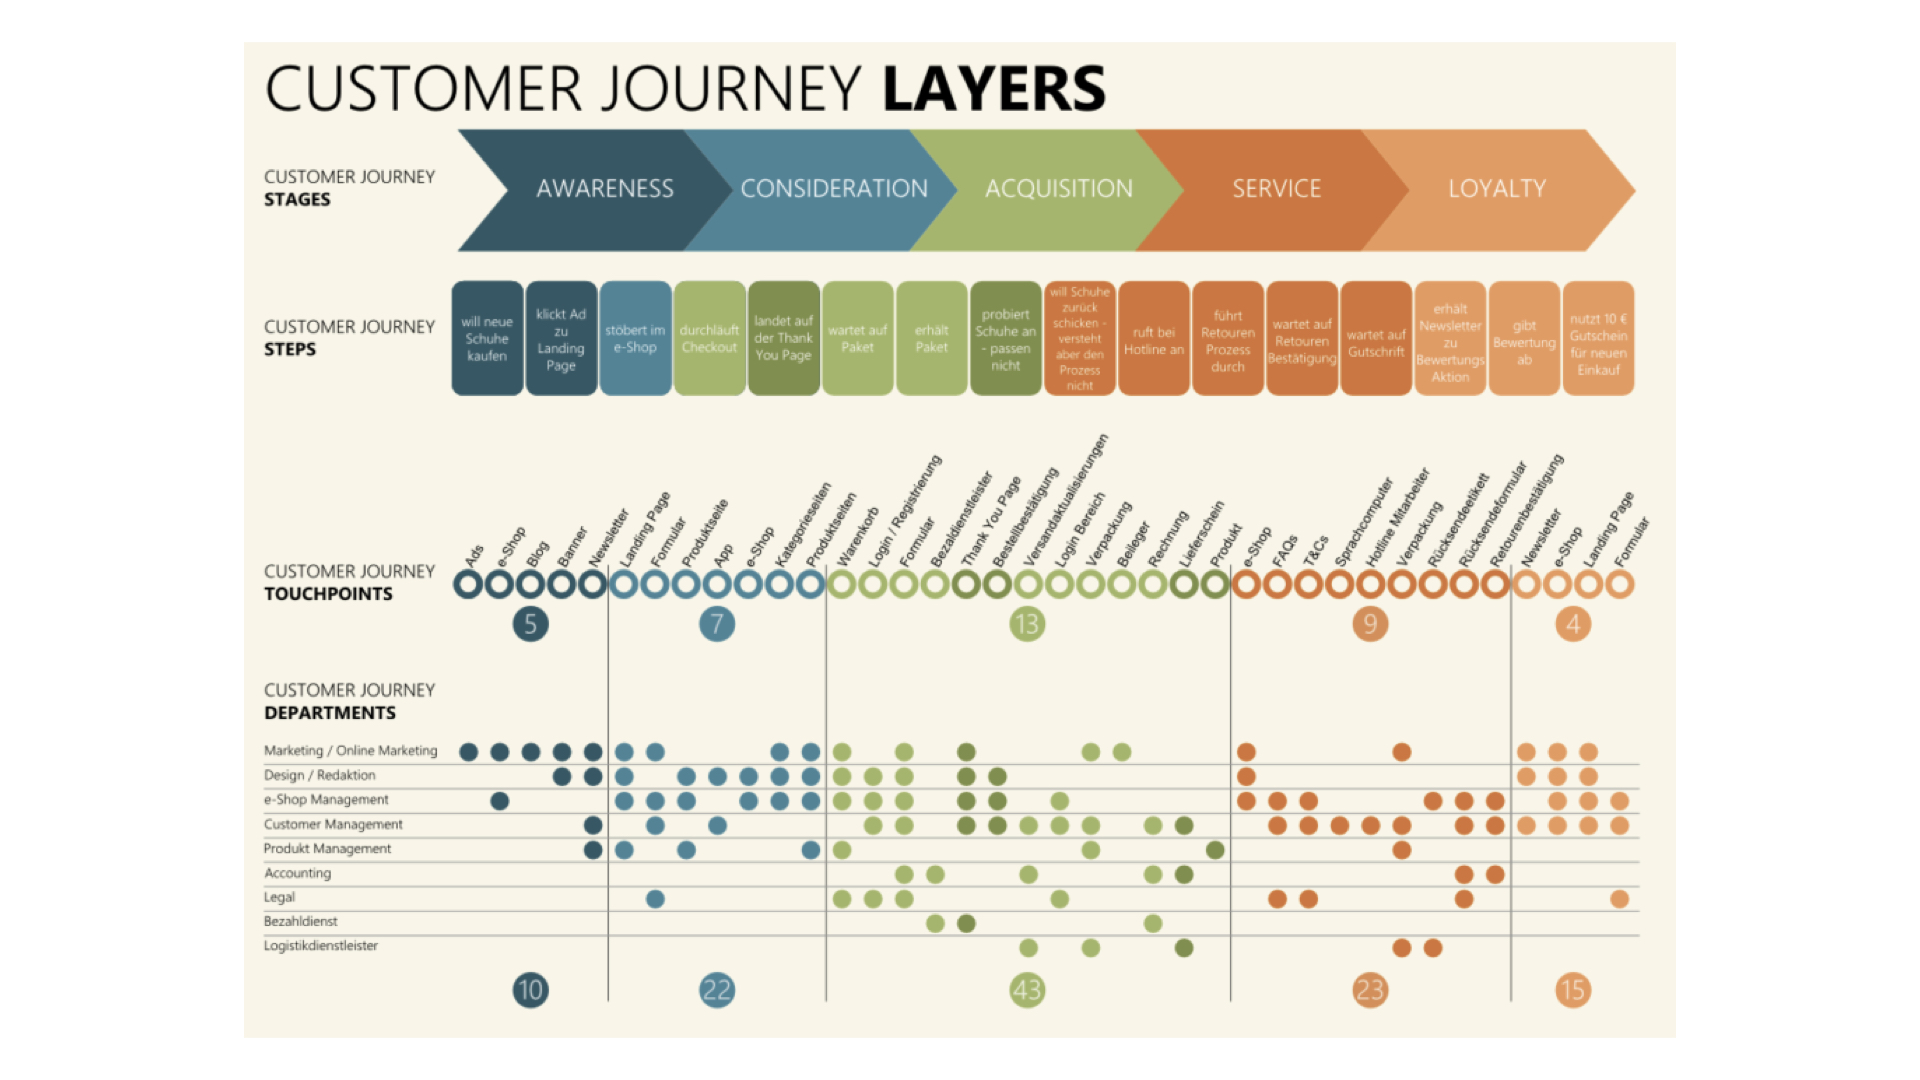 Customer Journey Examples - stacy kessler.003.jpeg